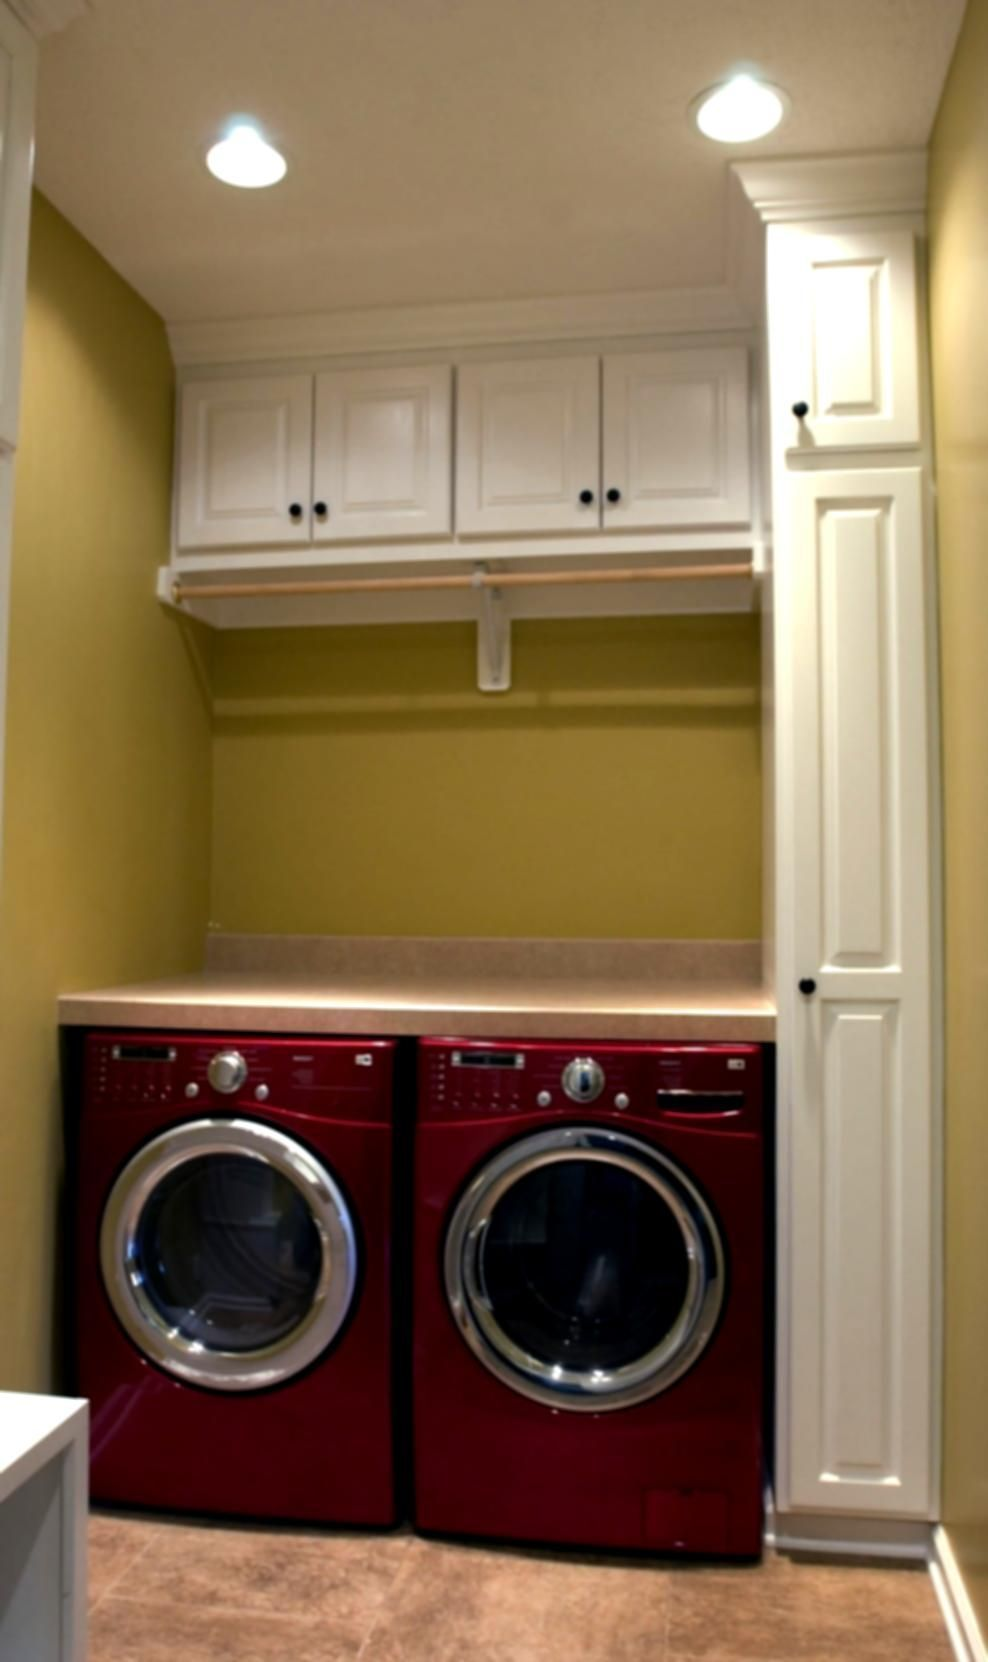 Small Mud Room With Washer And Dryer Designs Laundry Room Ideas Stacked Washer Drye Laundry Closet Makeover Stacked Laundry Room Laundry Room Storage Shelves